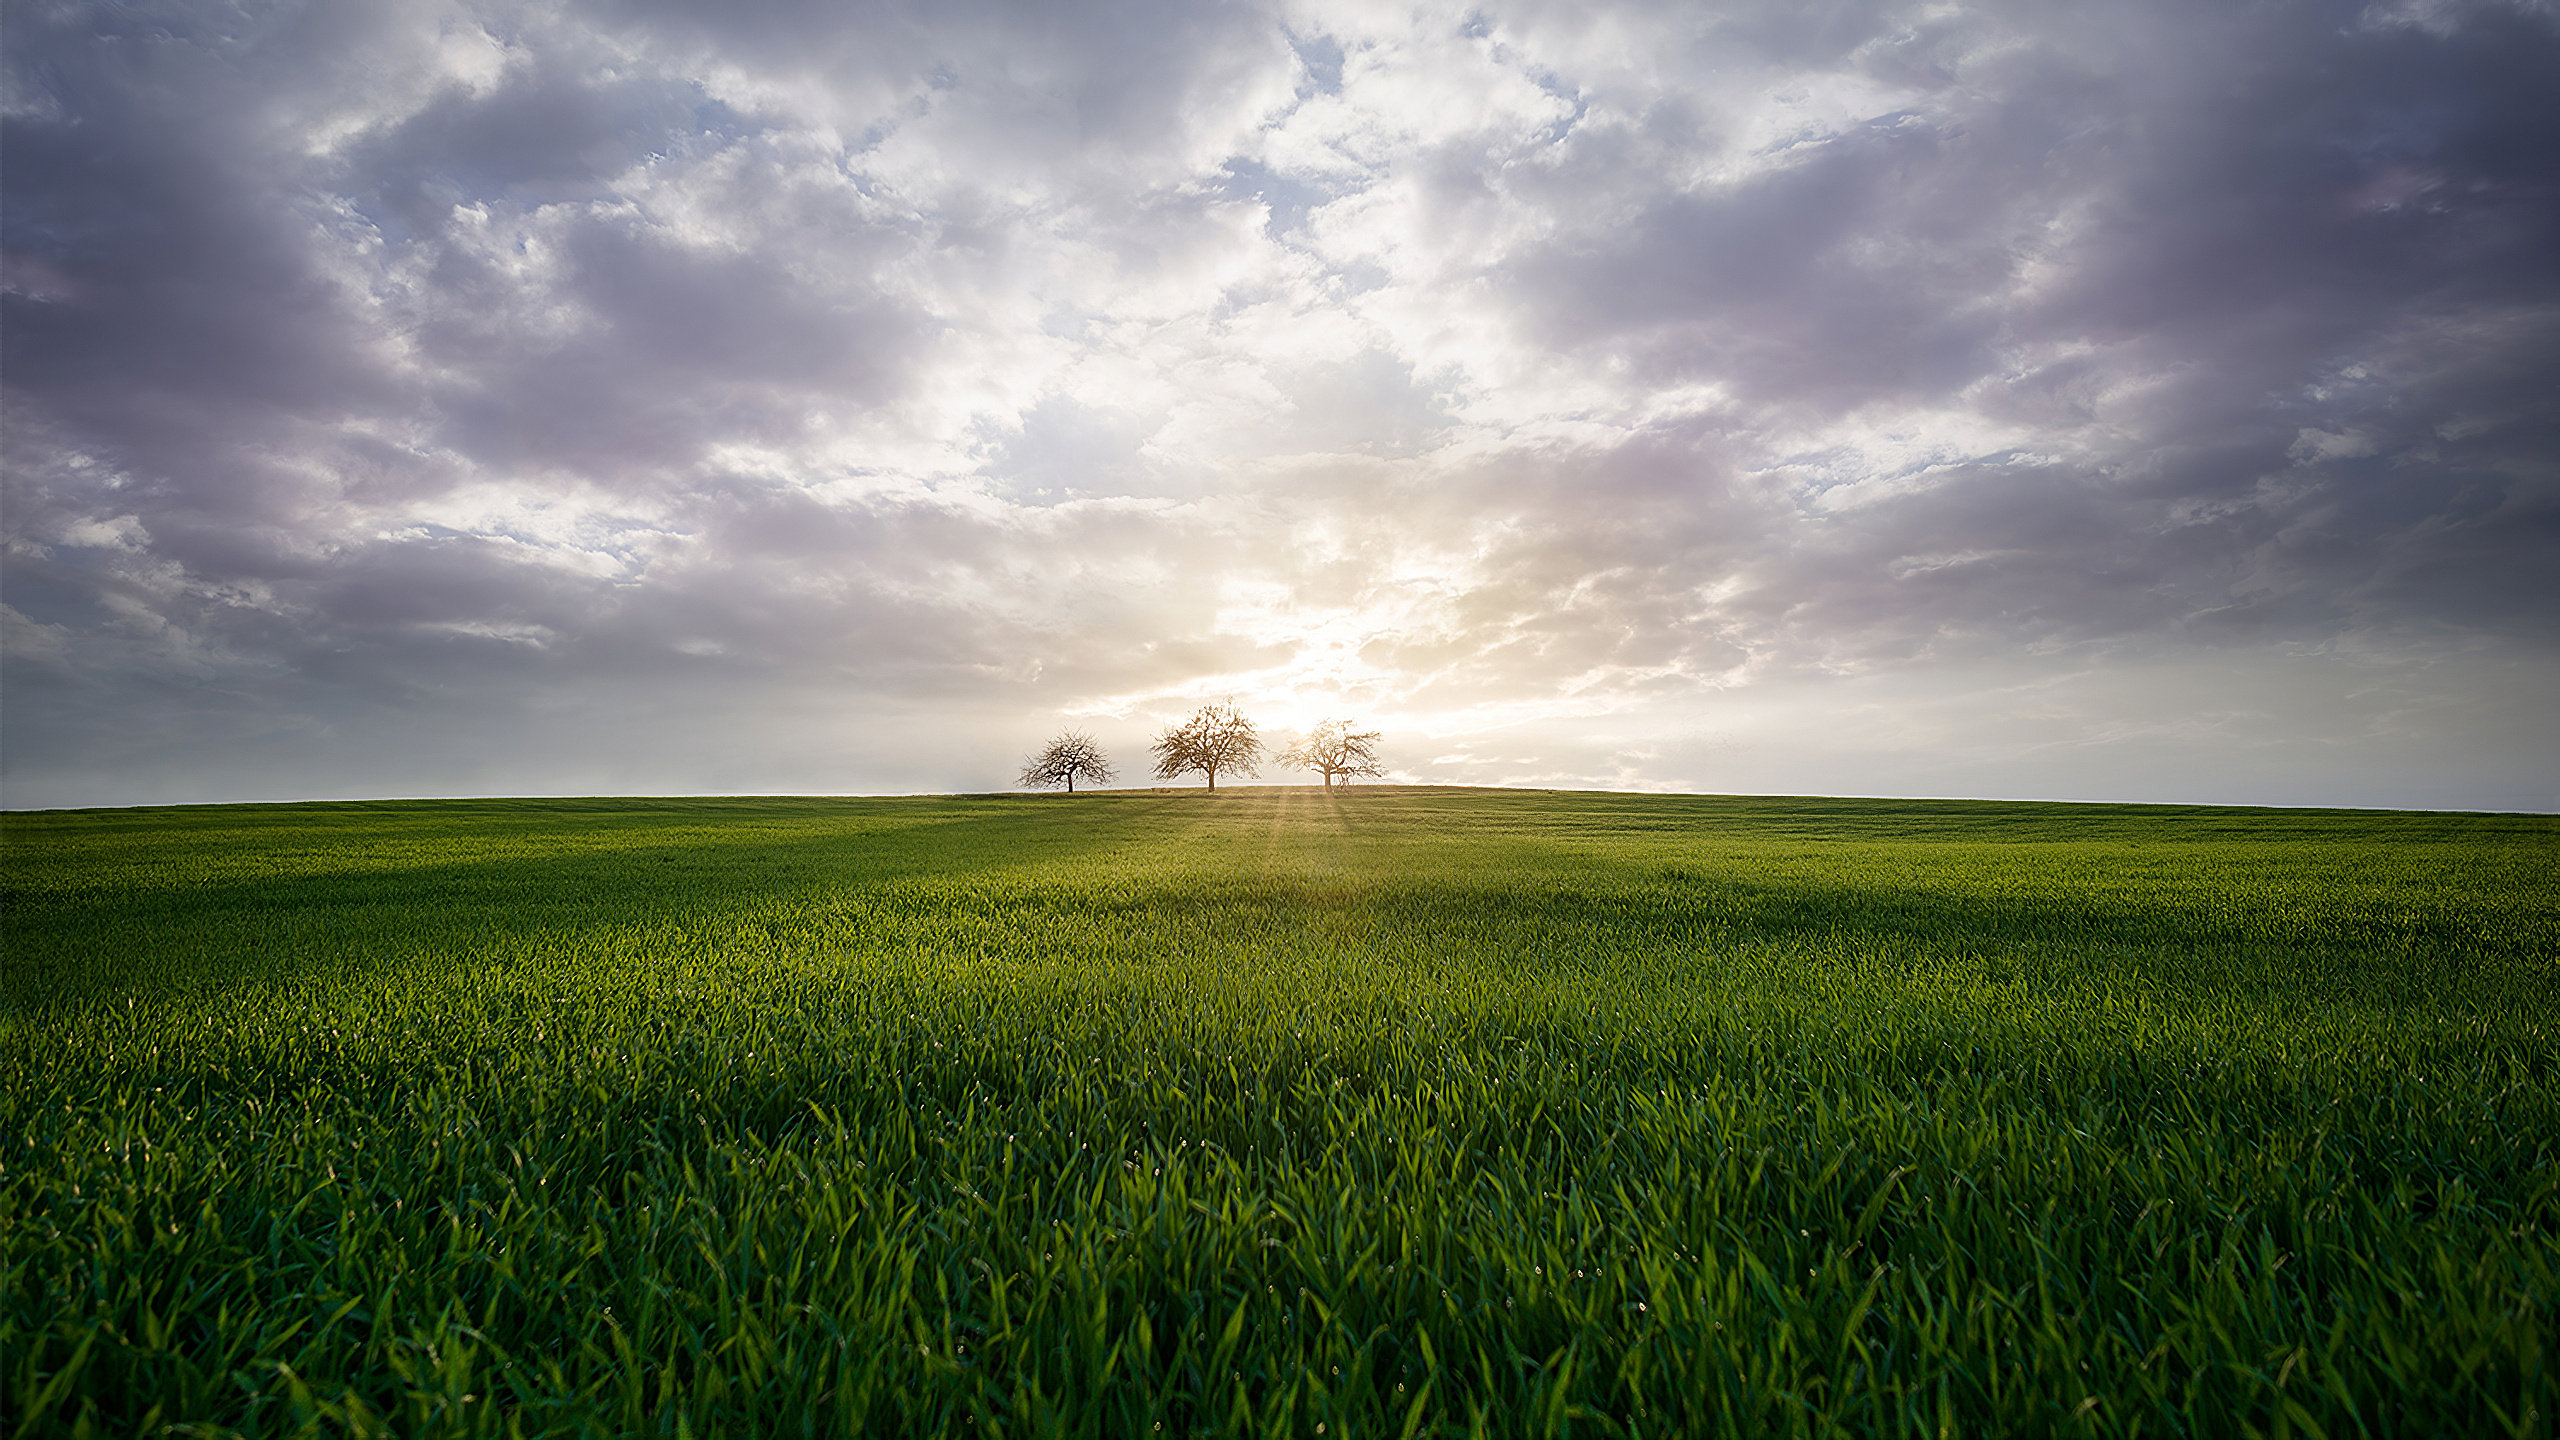 General 2560x1440 trees green grass nature field steppe landscape